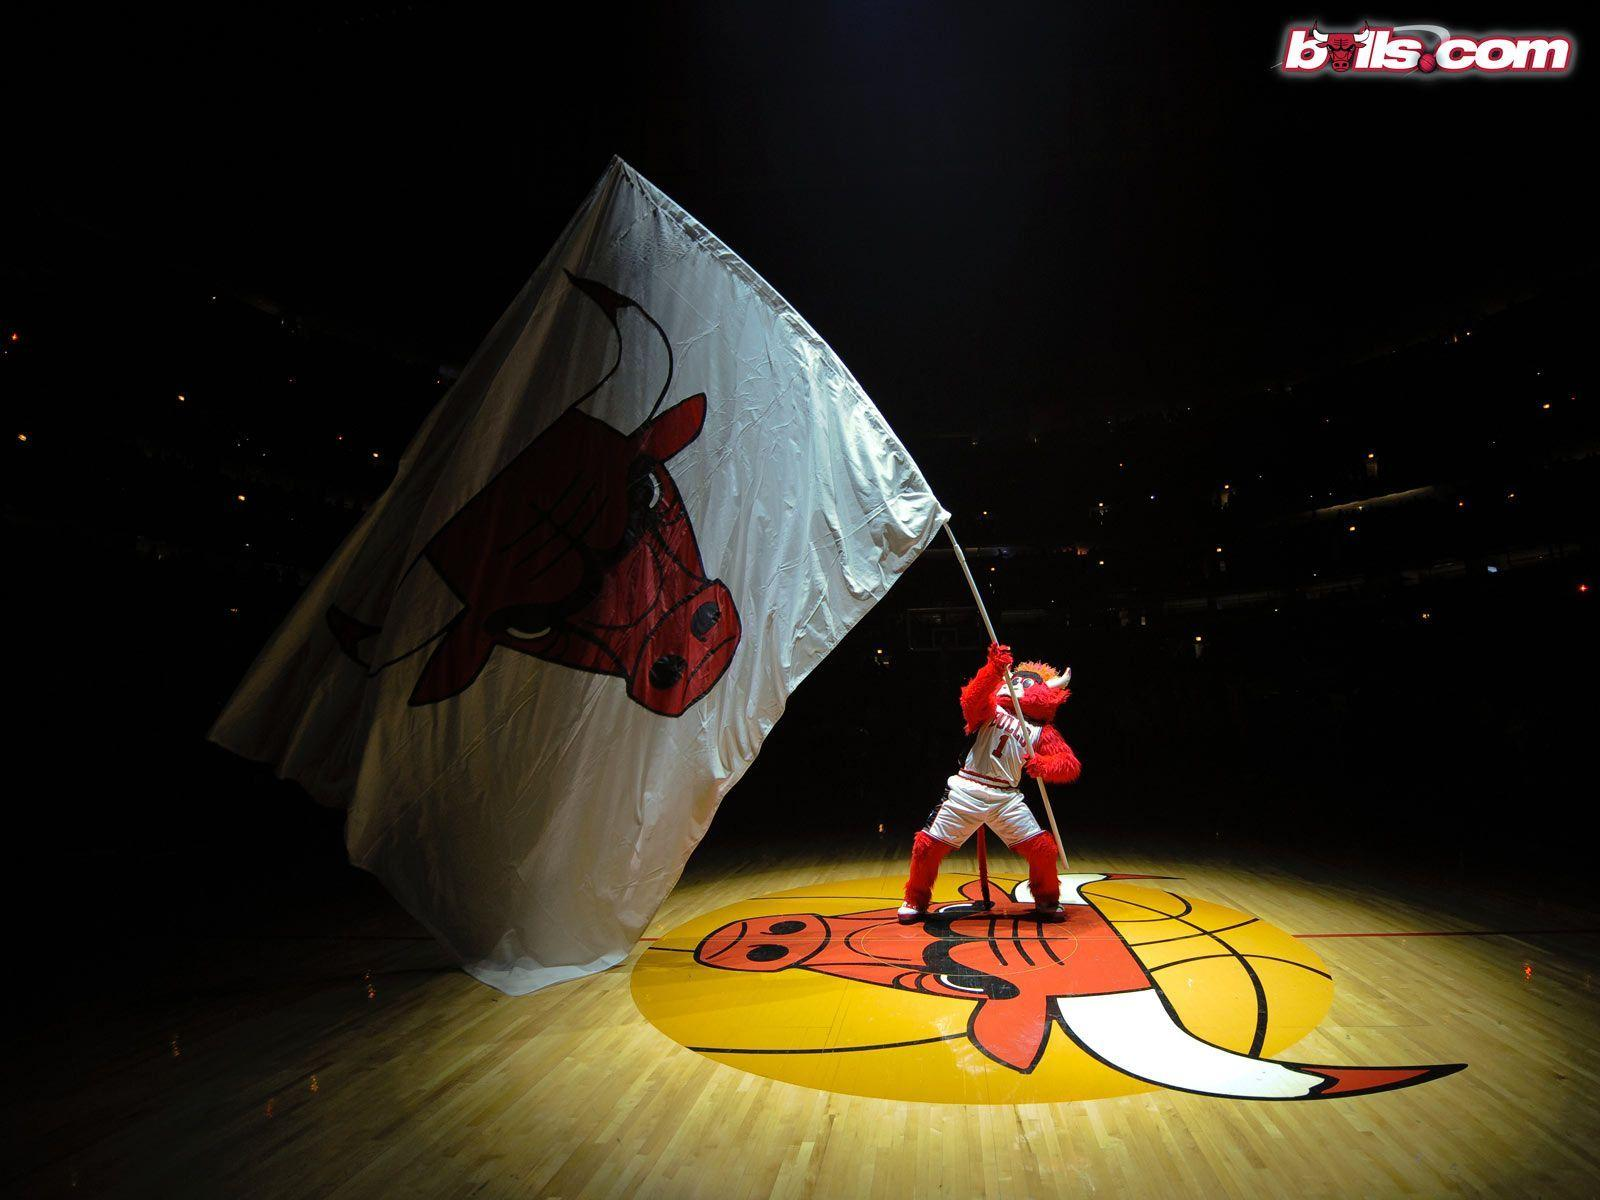 Bull Wallpapers Group With 61 Items: Chicago Sports Wallpapers